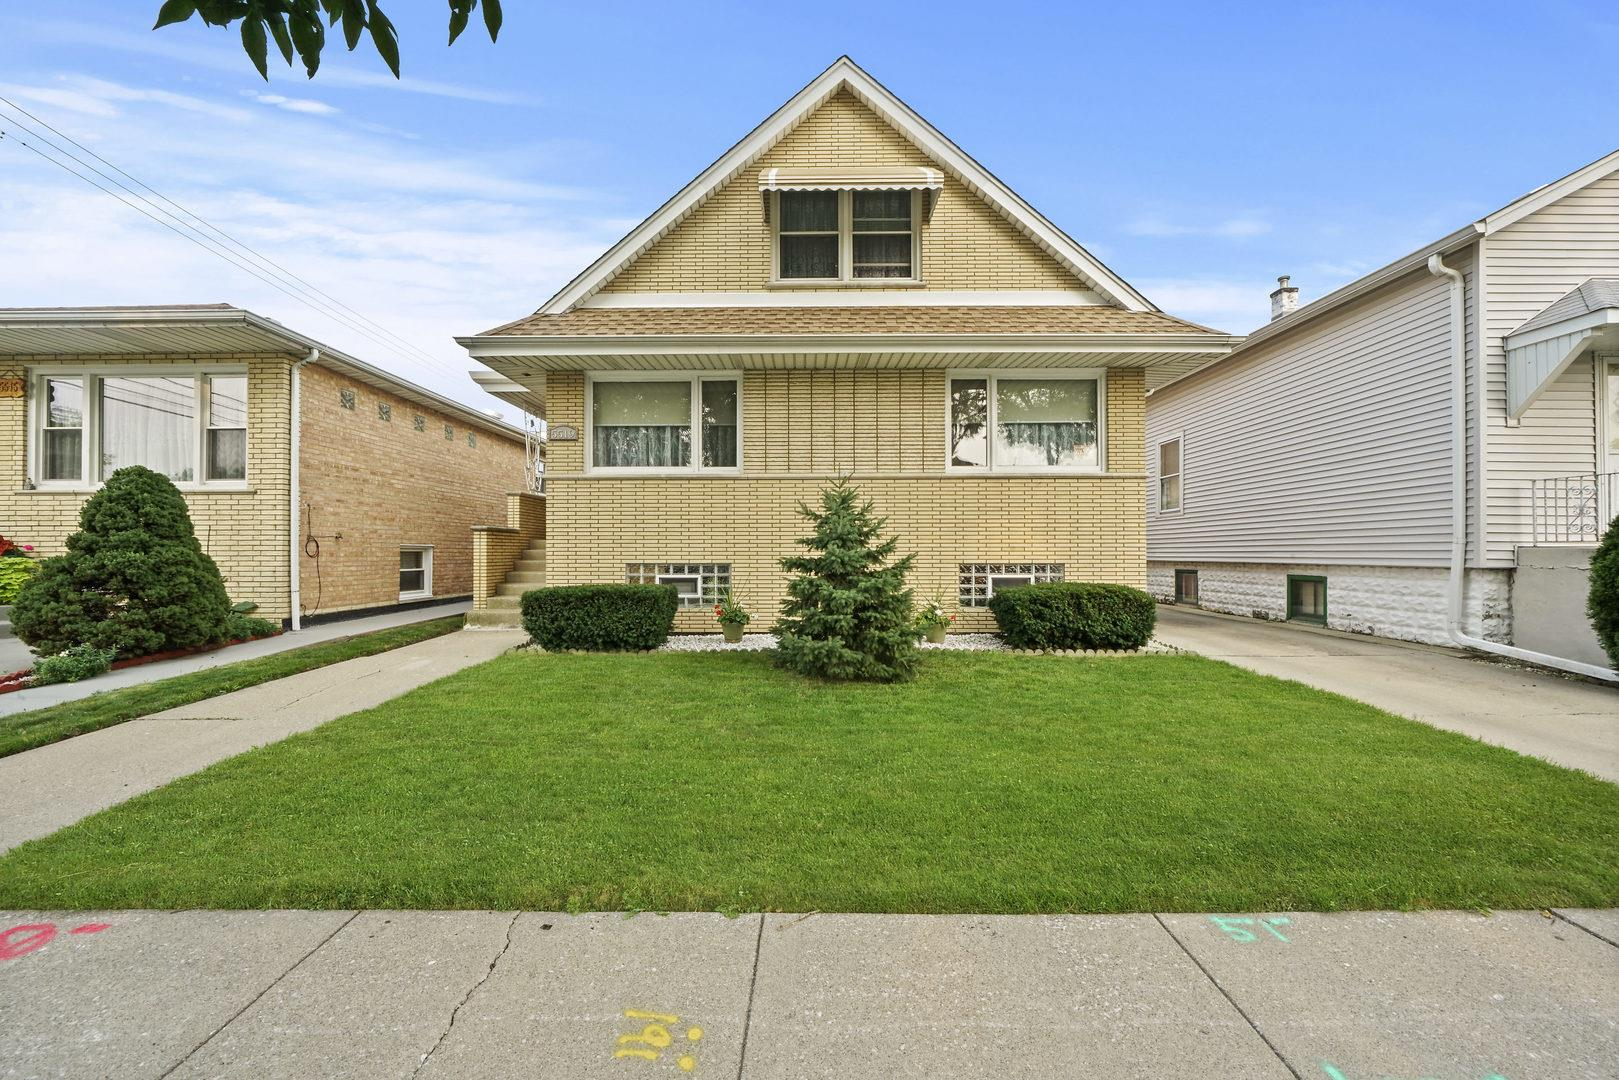 5519 S Kildare Avenue, Chicago, IL 60629 - #: 10859642